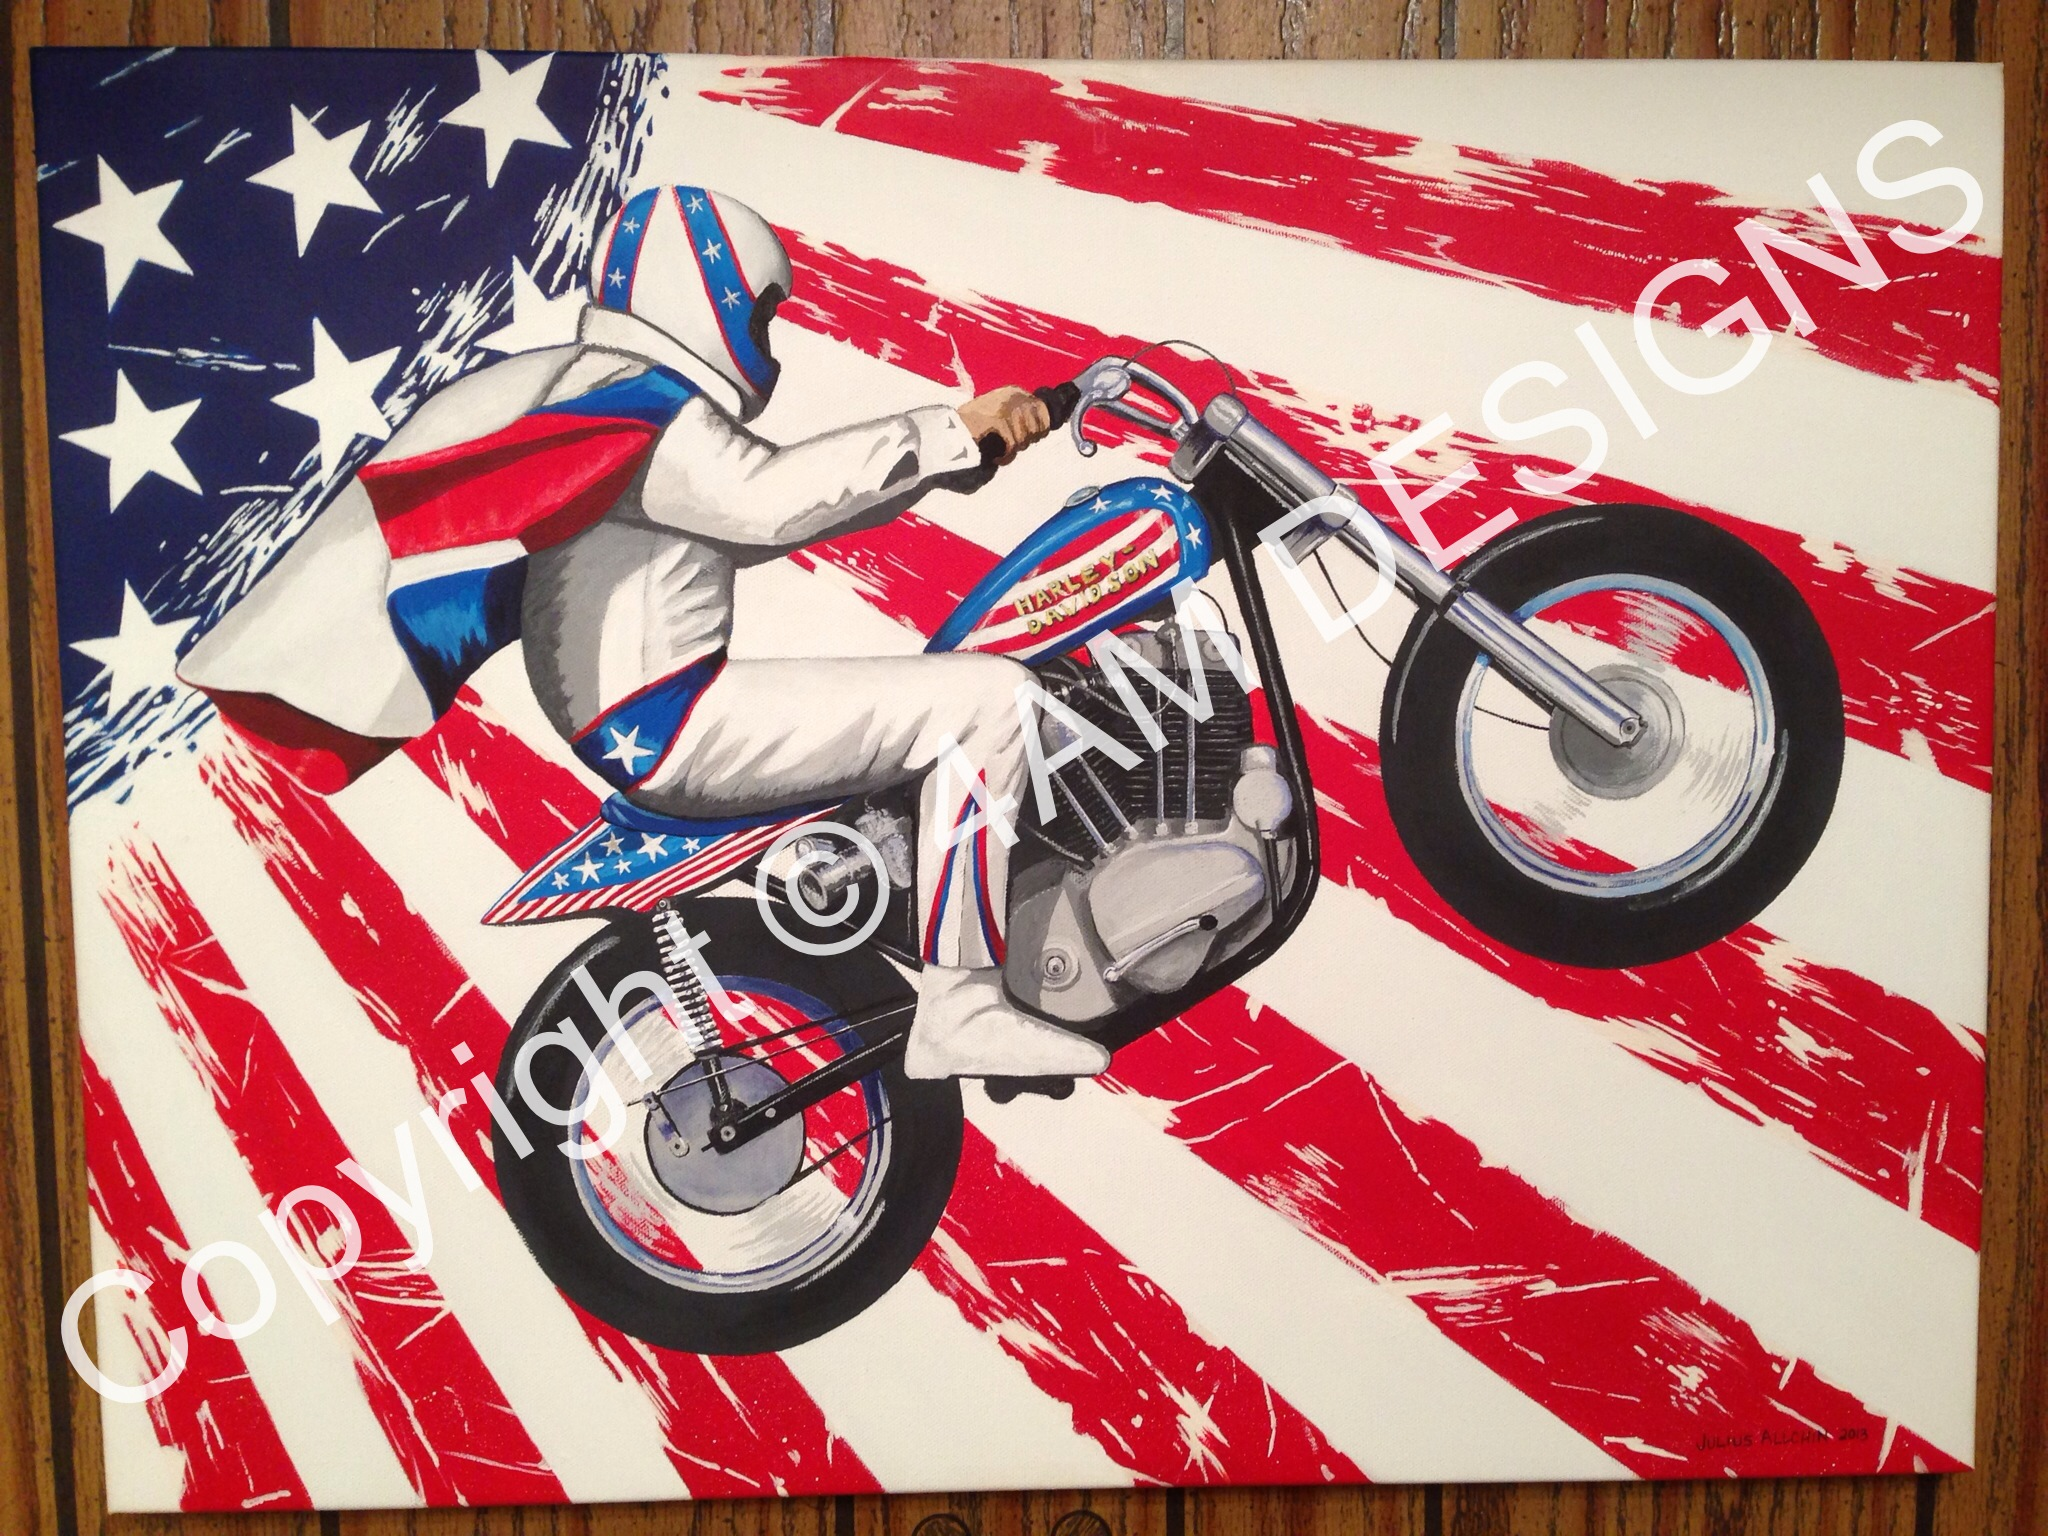 2048x1536 - Evel Knievel Wallpapers 7